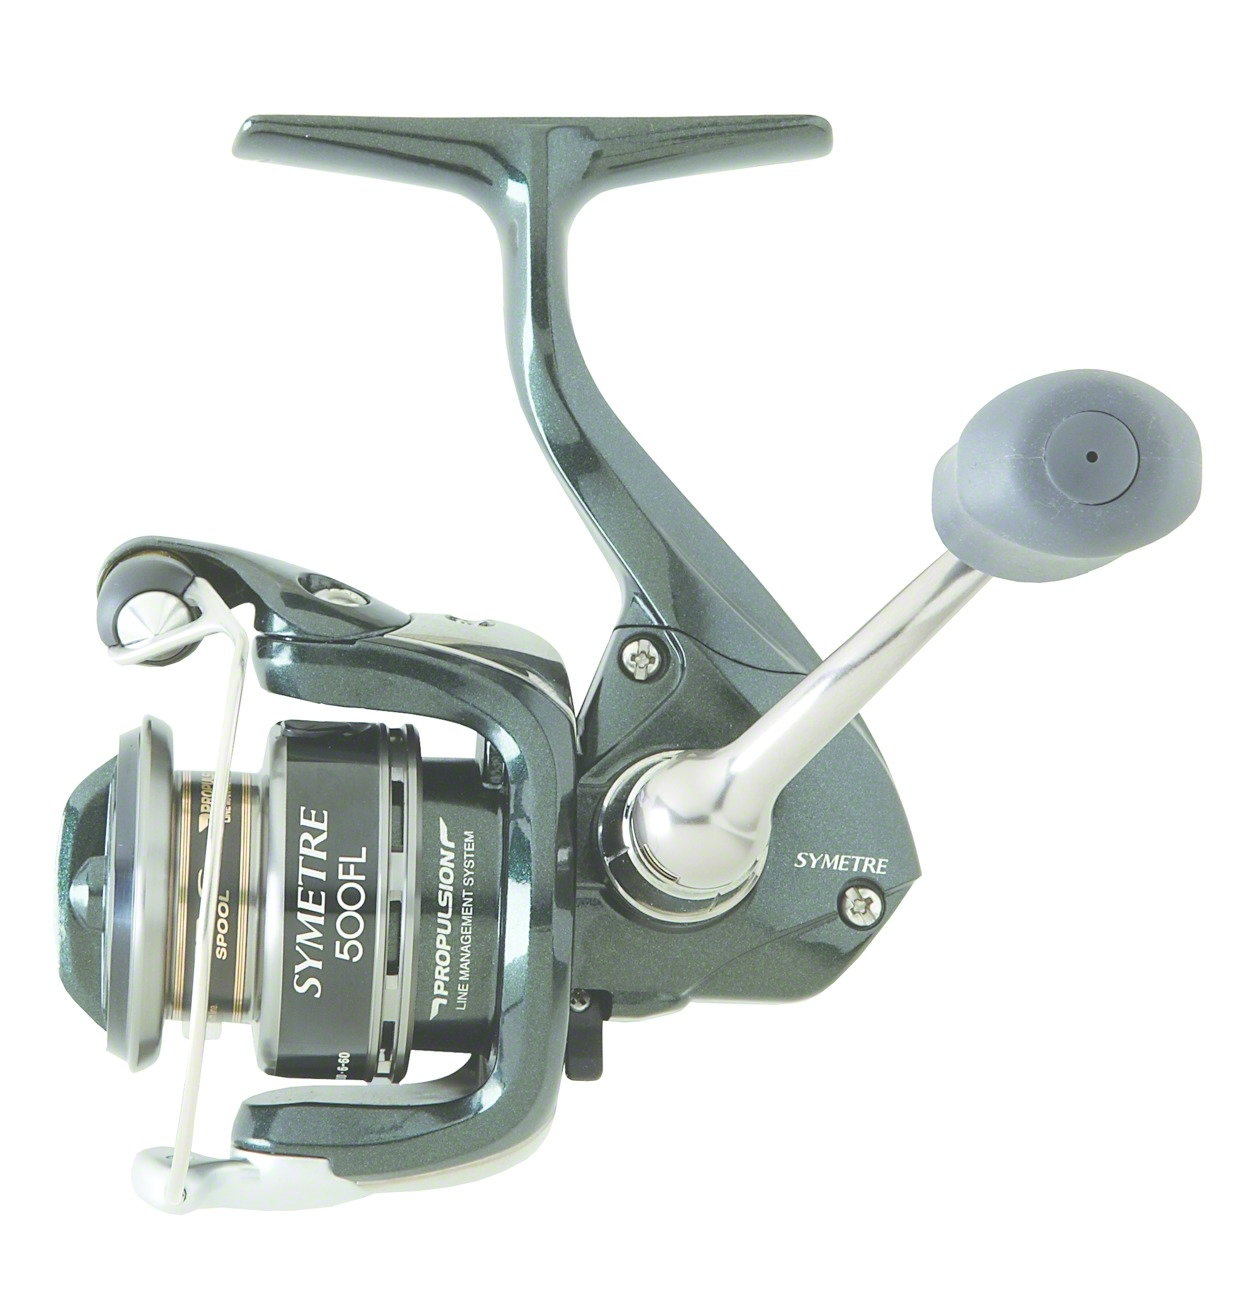 Shimano sy500fl symetre spinning fishing reel fd 4 7 1 for Ebay fishing reels shimano